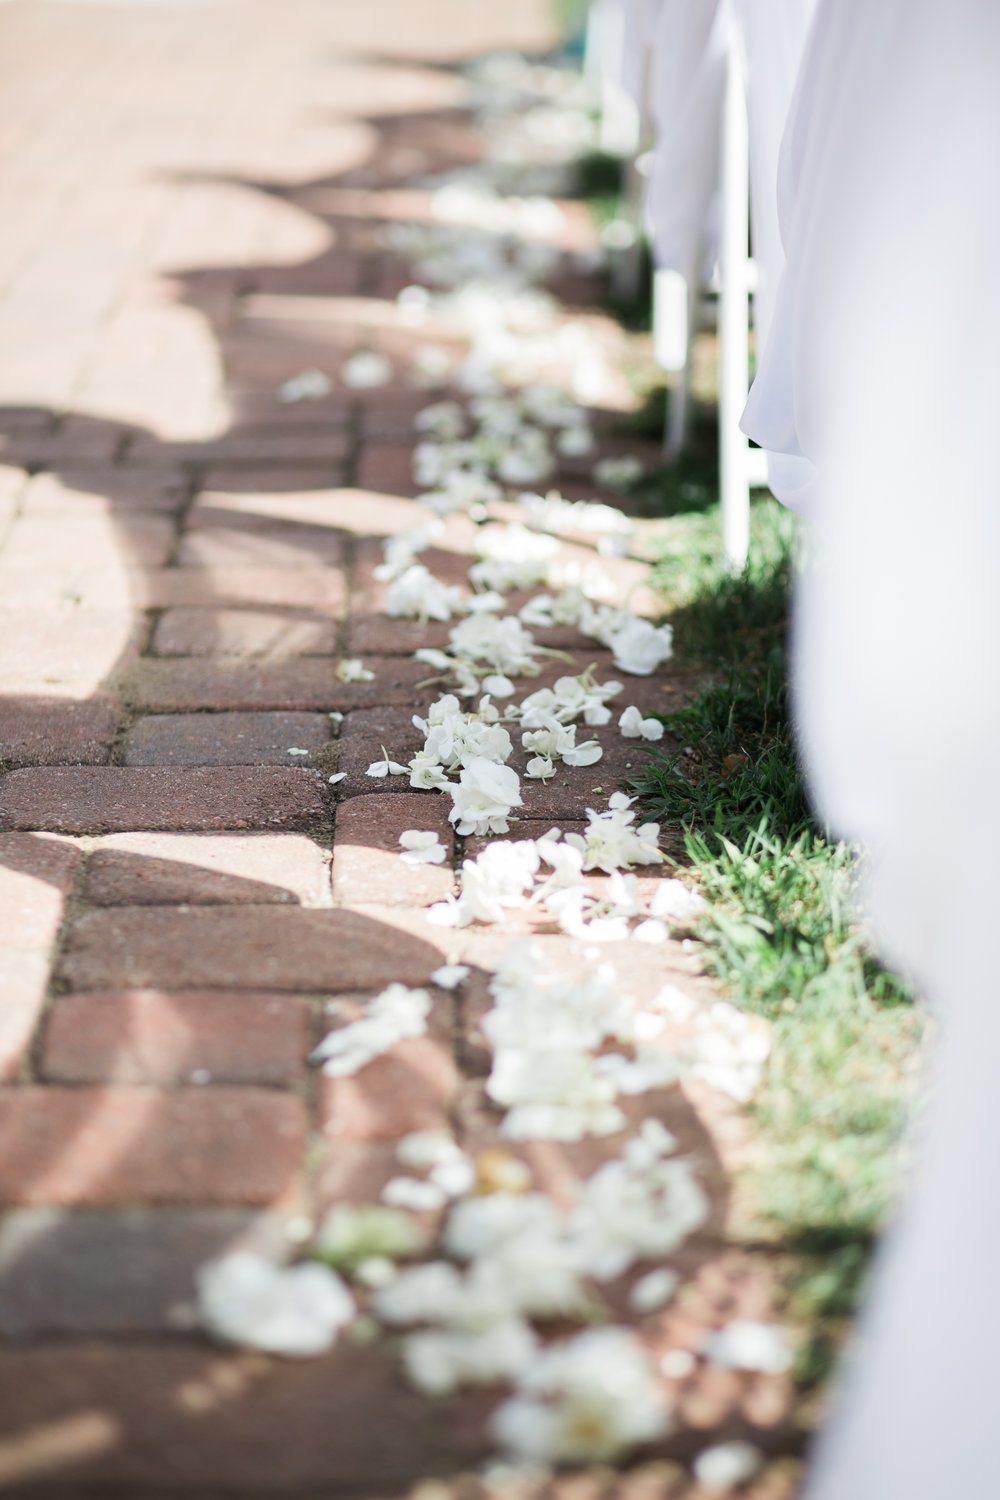 Katelyn_Wollet_Photography_Ann_Arbor_Wedding-62.jpg